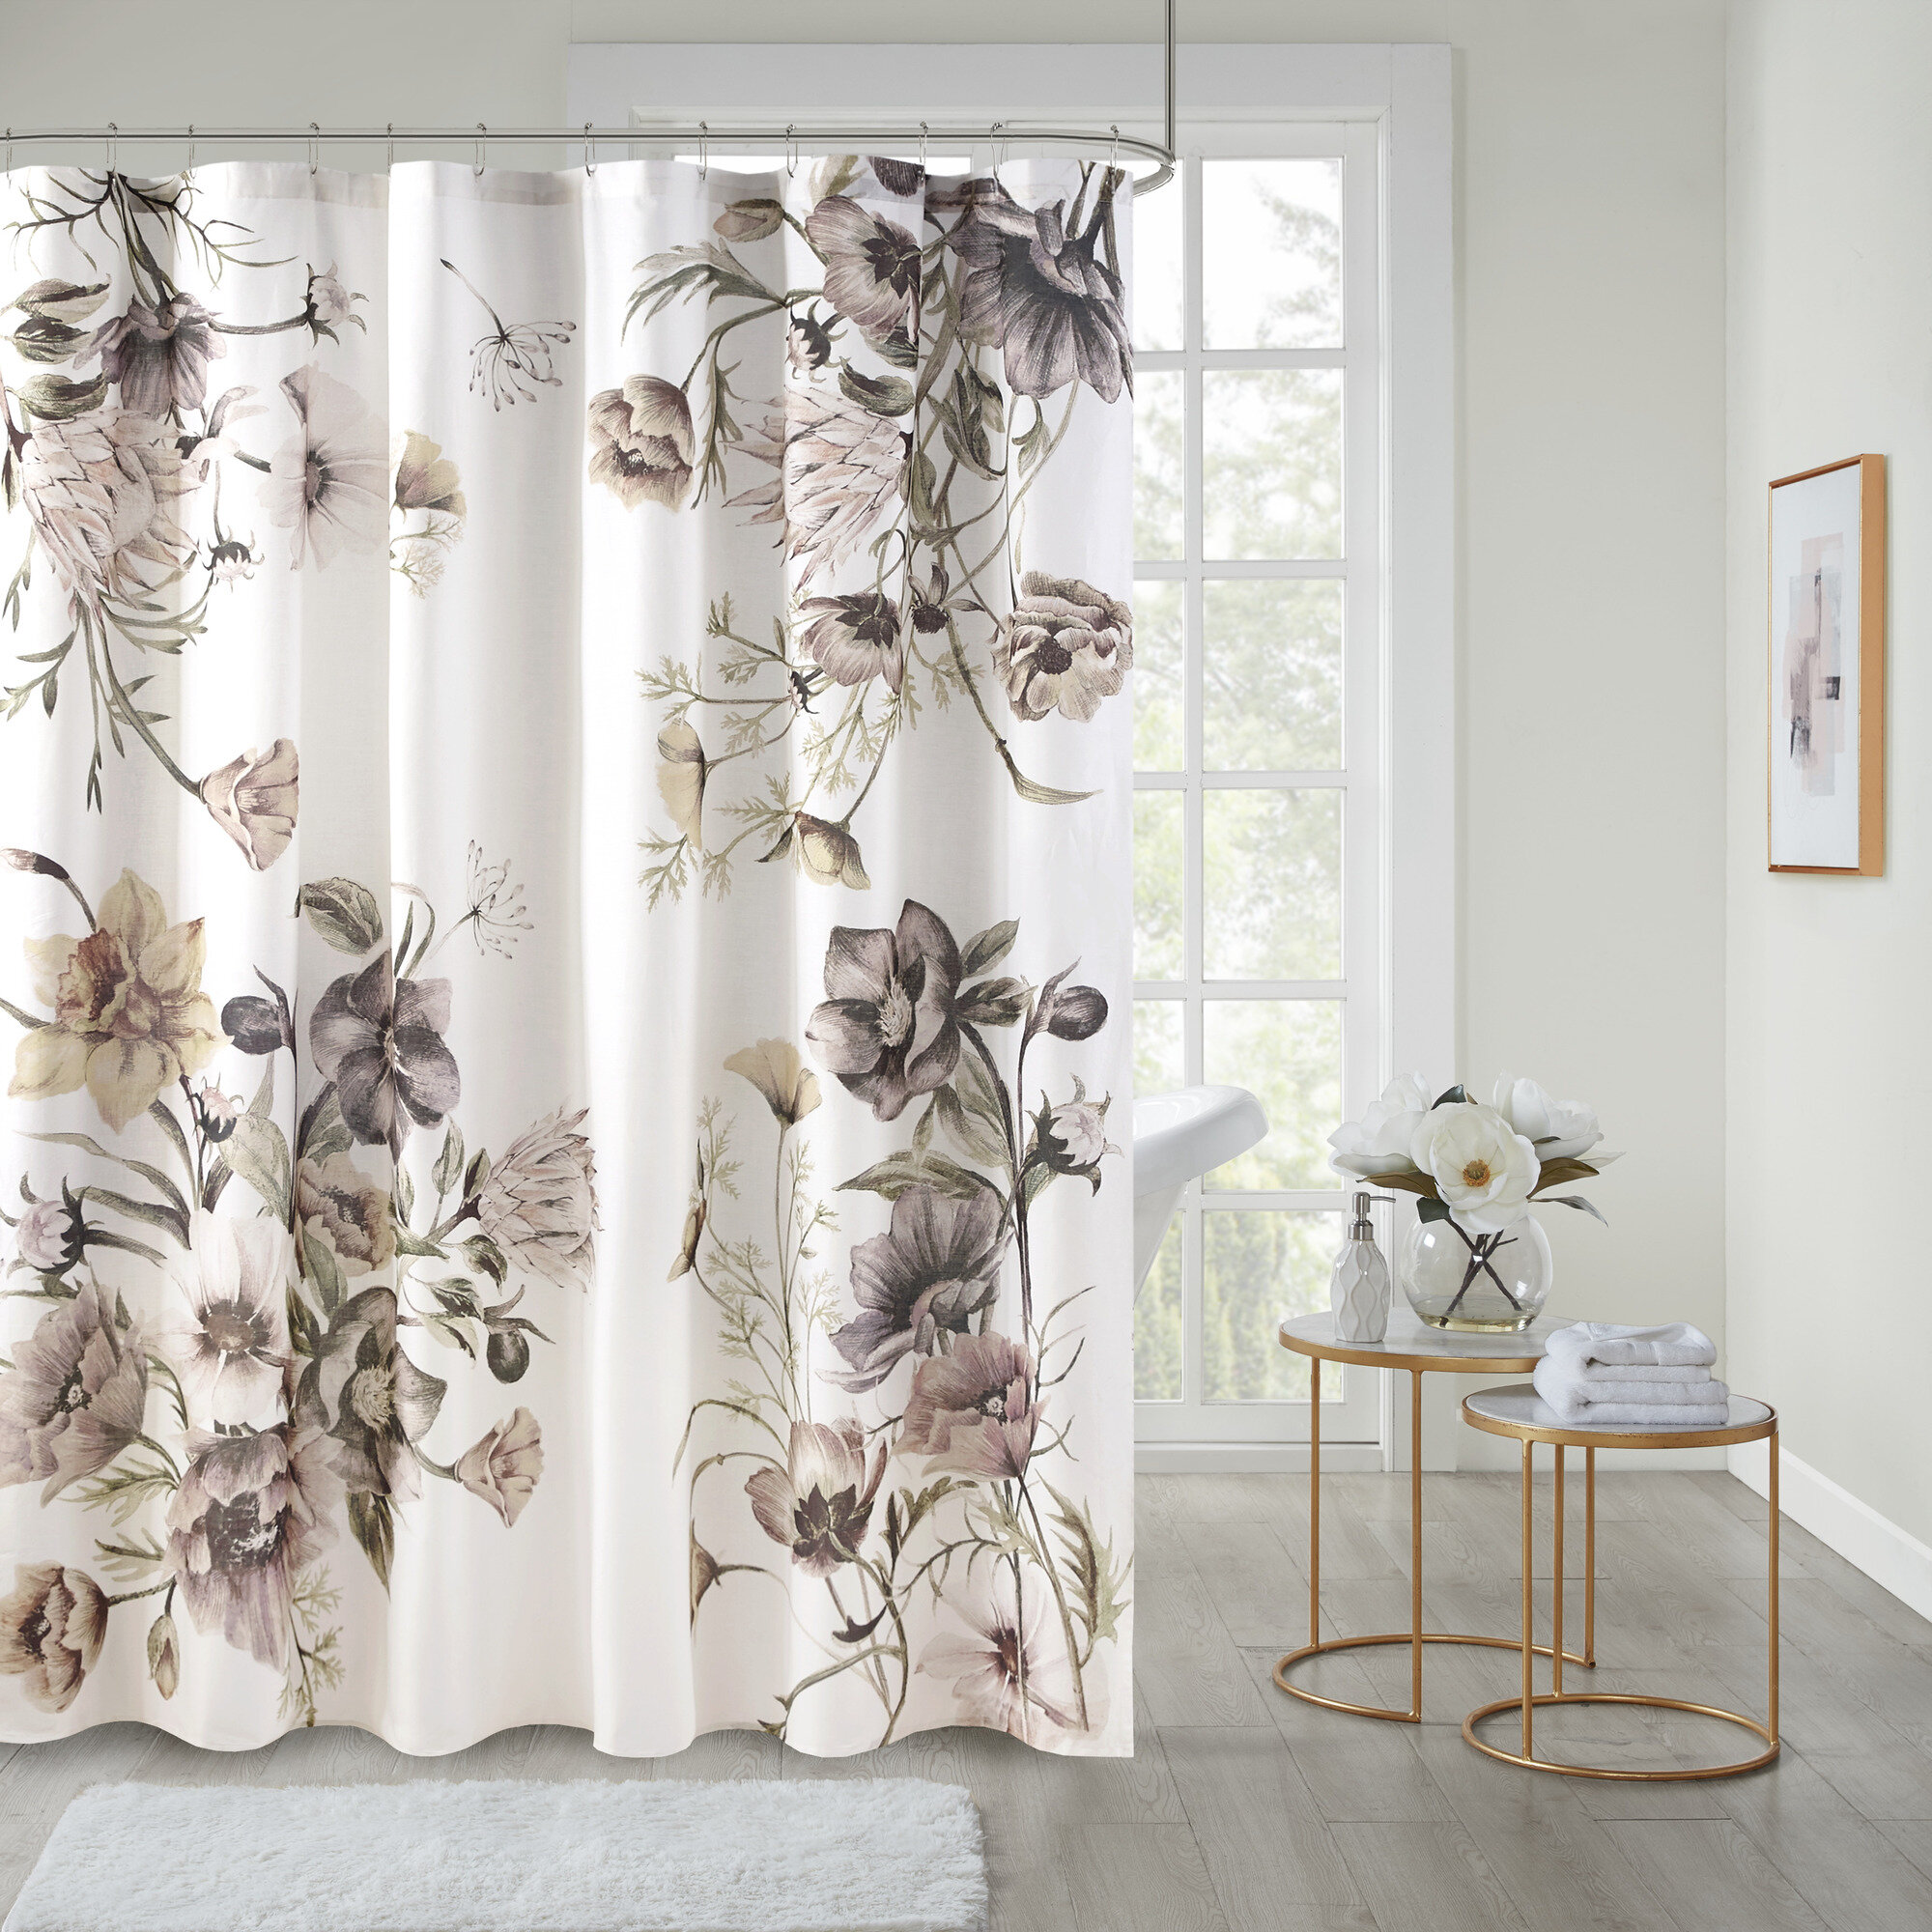 Ophelia Co Wetherell Cotton Floral Single Shower Curtain Reviews Wayfair